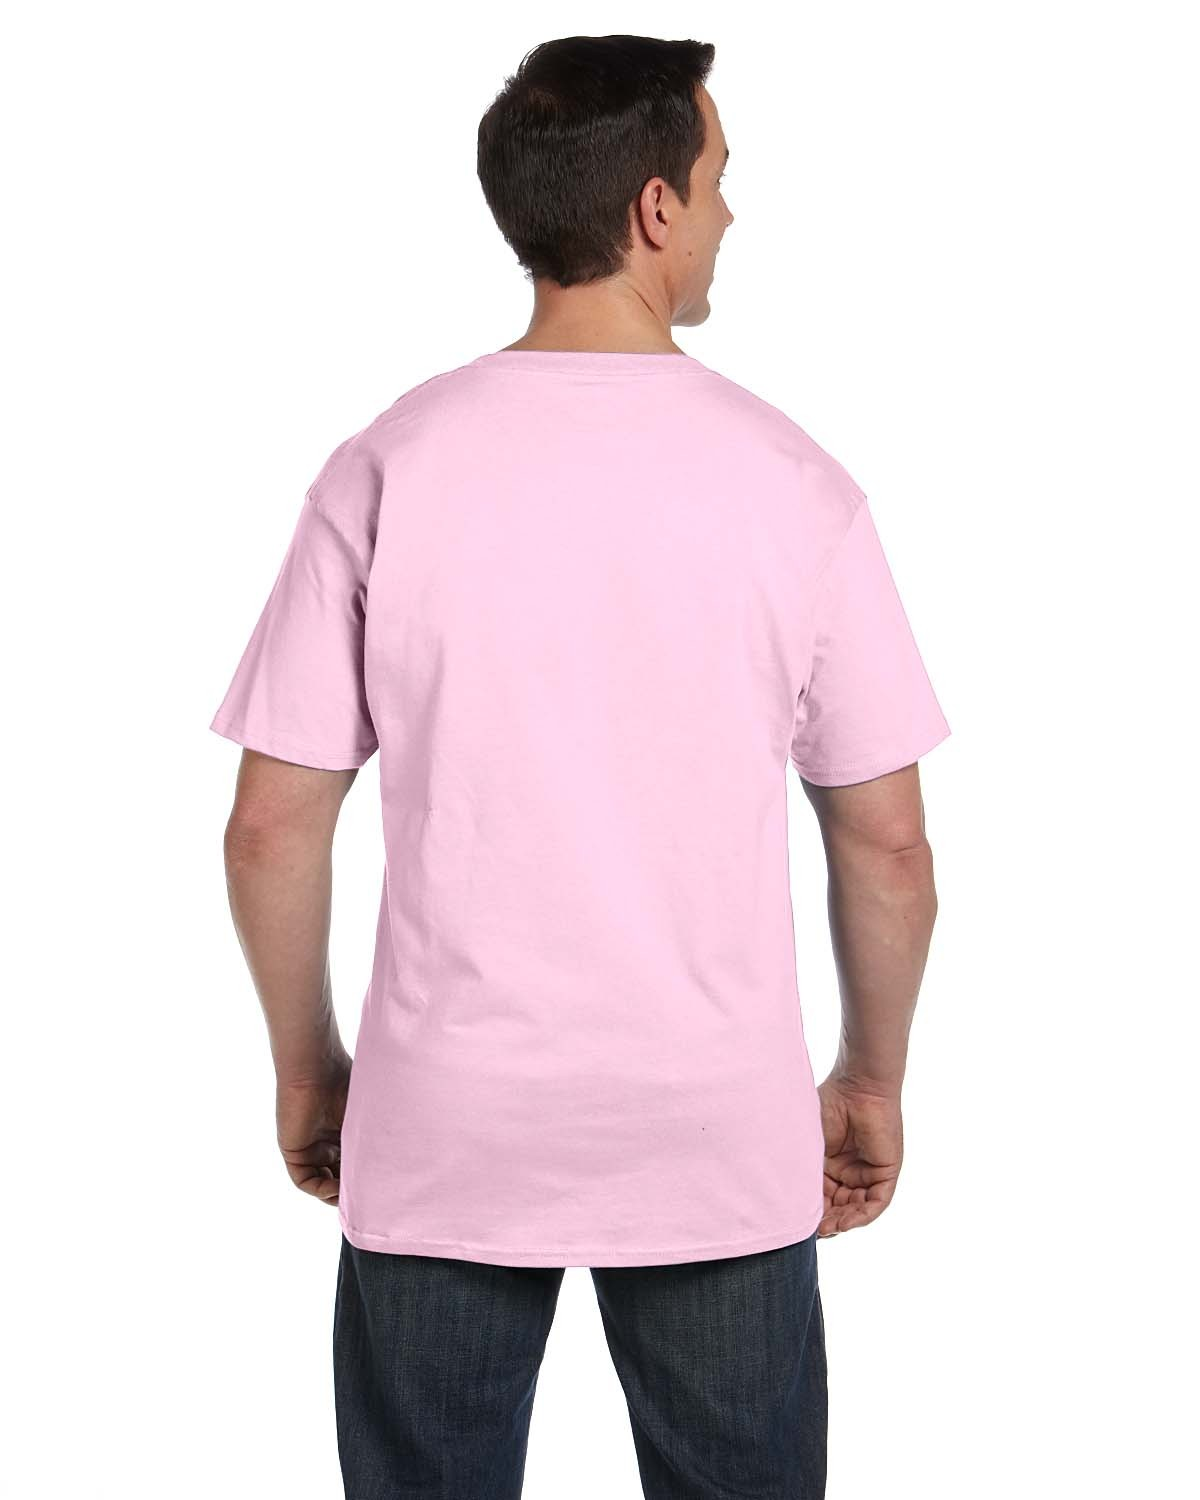 5190P Hanes PALE PINK